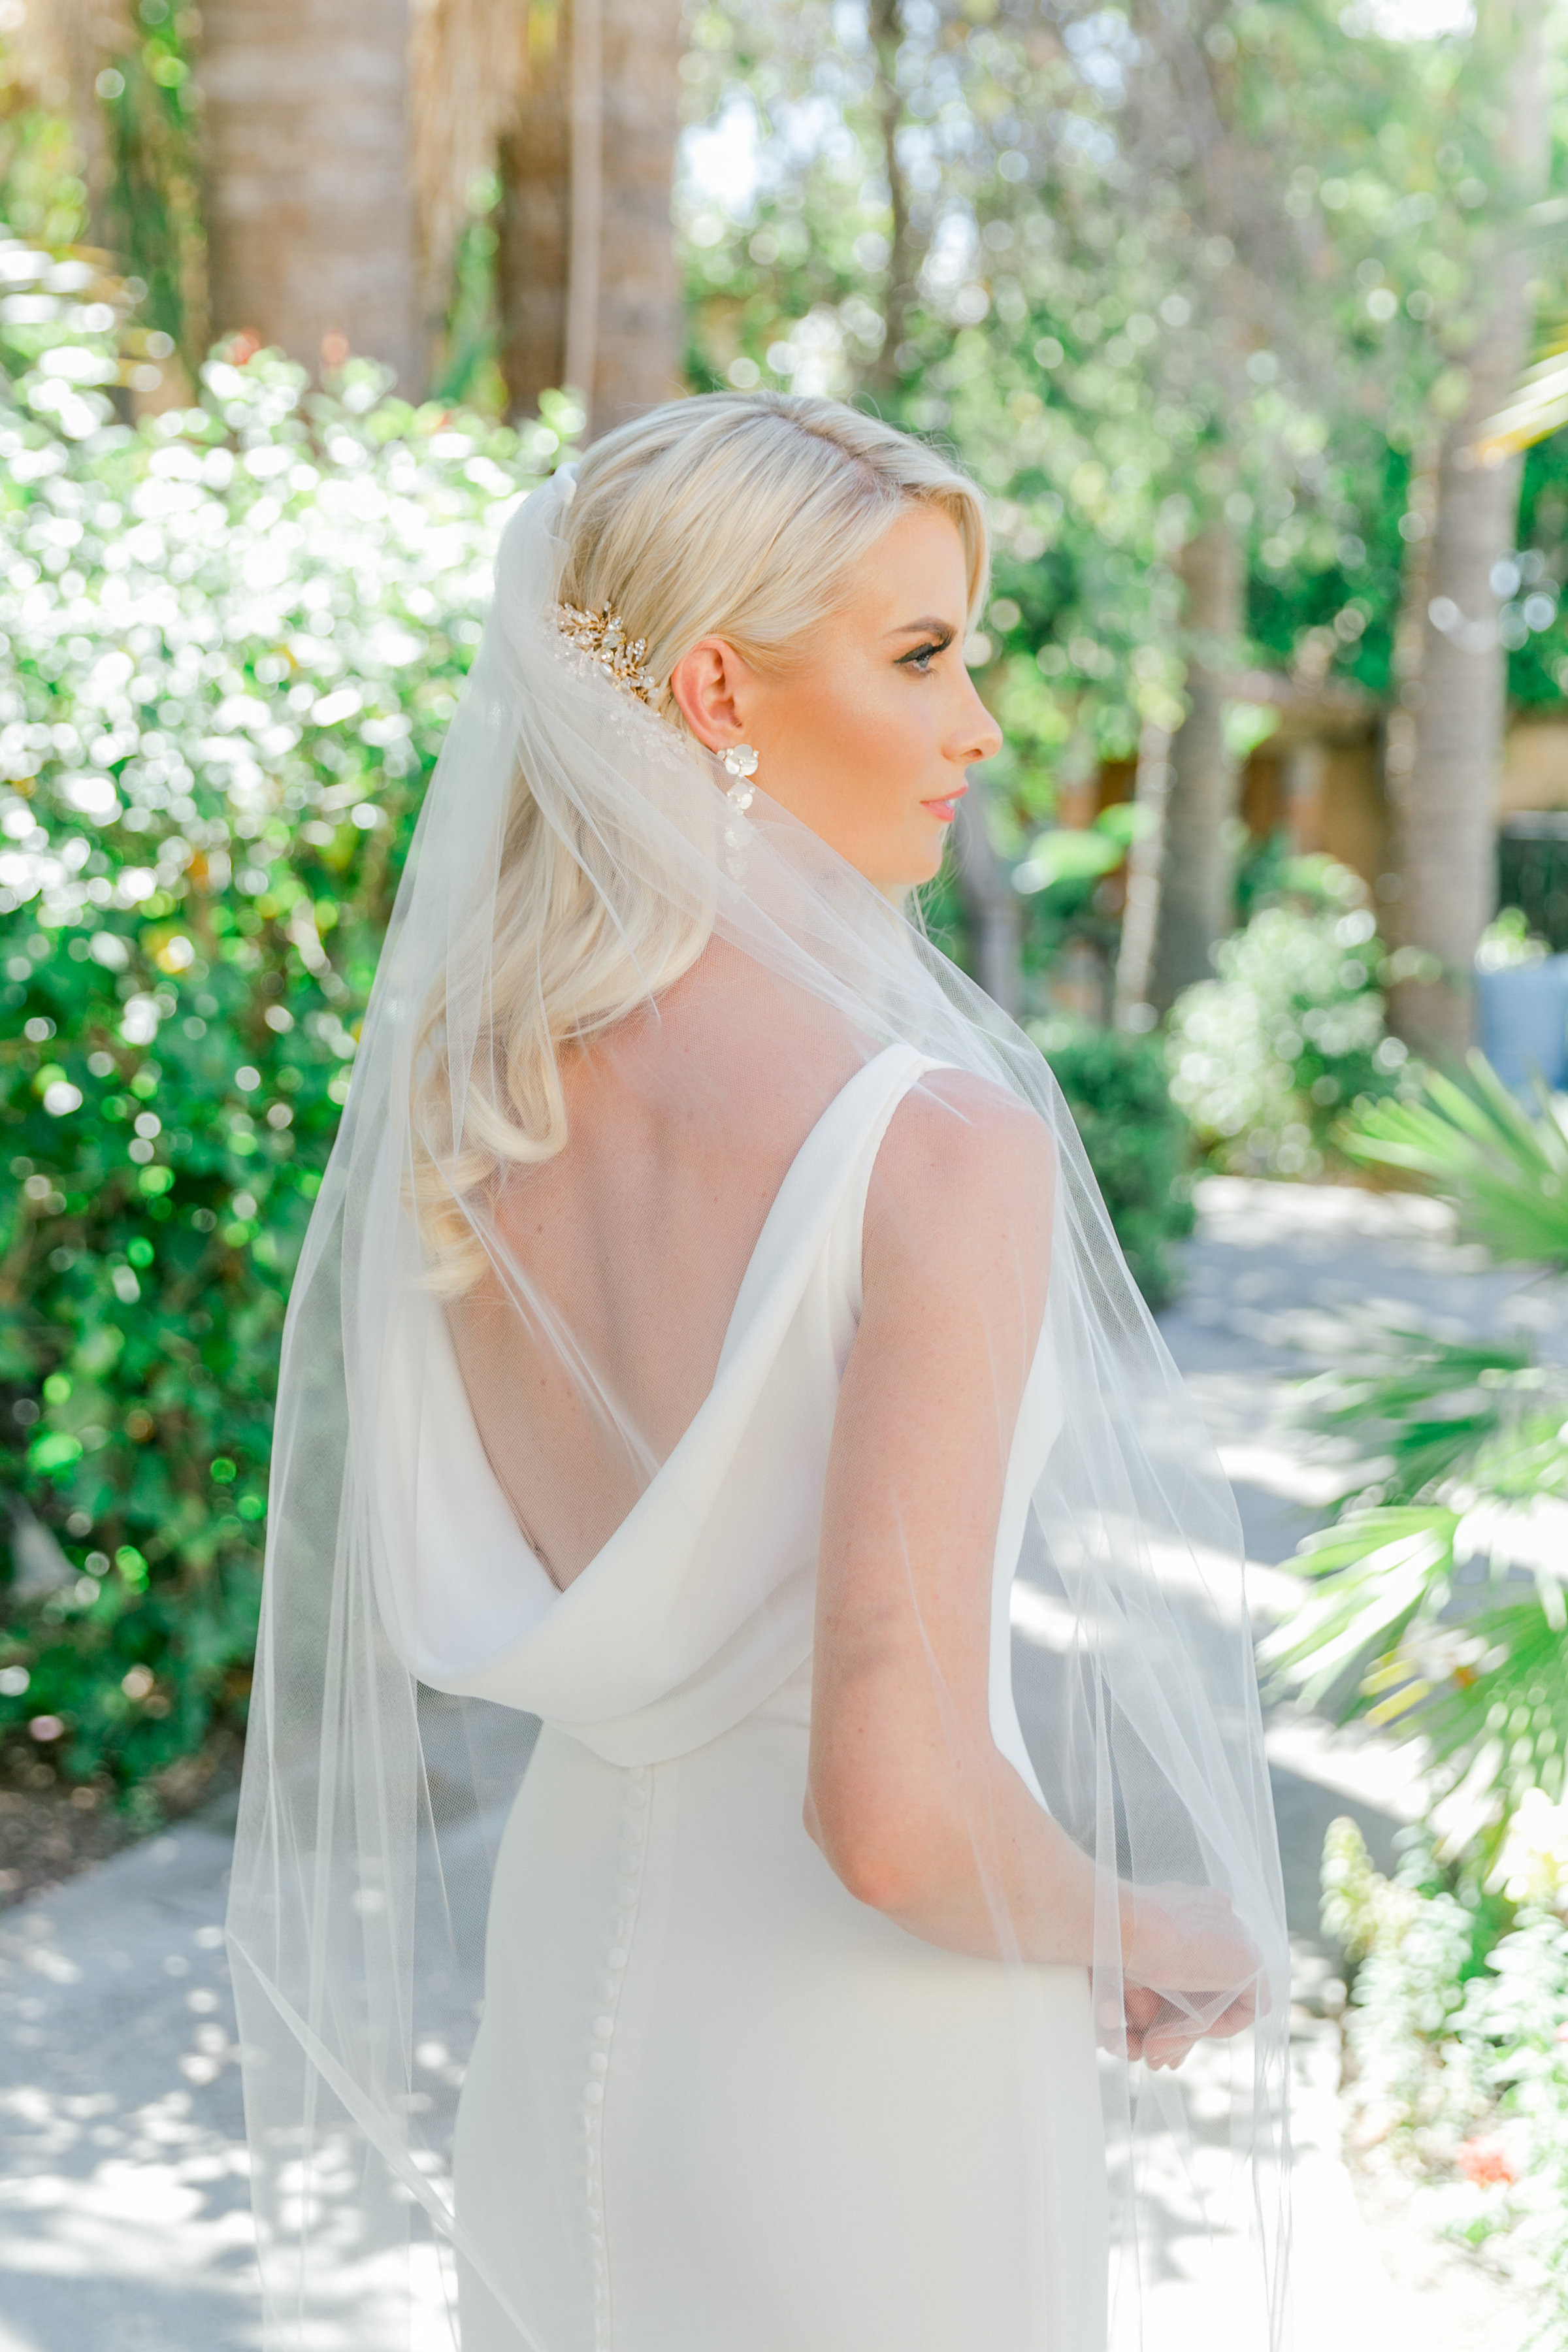 Karlie Colleen Photography - Arizona Wedding - Royal Palms Resort- Alex & Alex-47